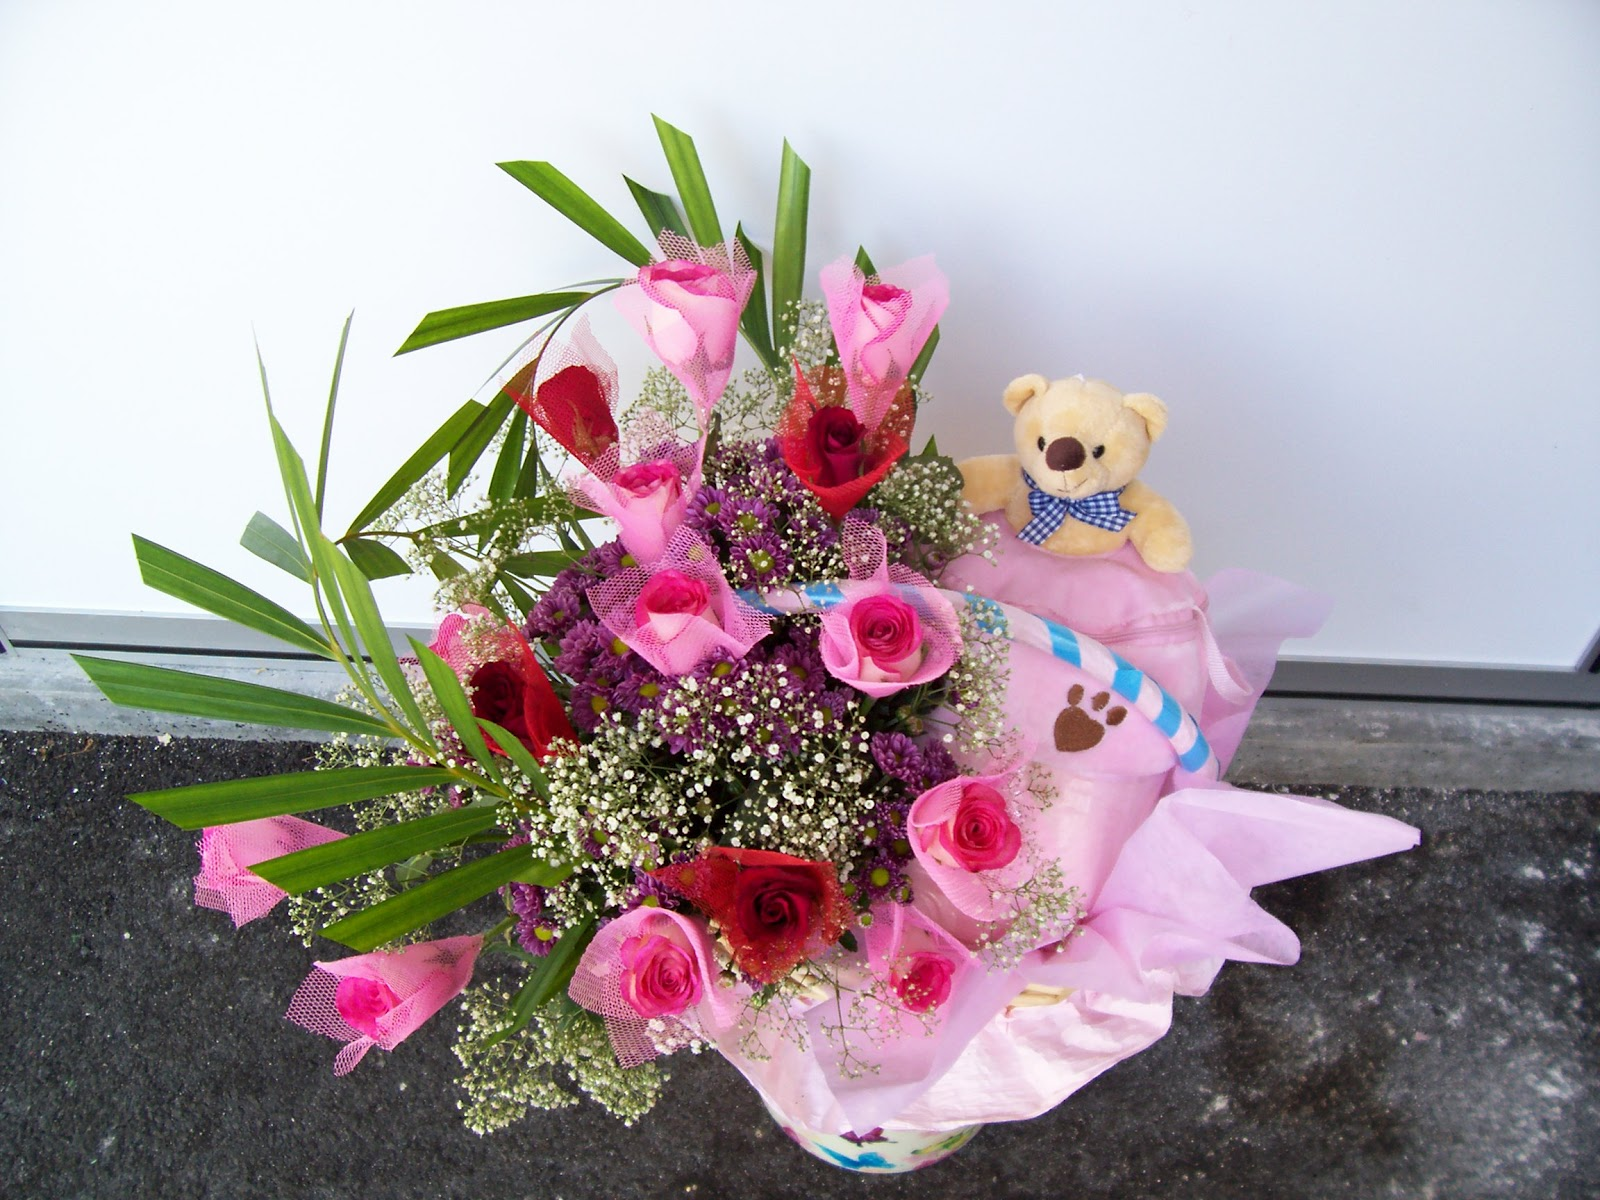 E Flower & Gift: Baby product & flower arrangement